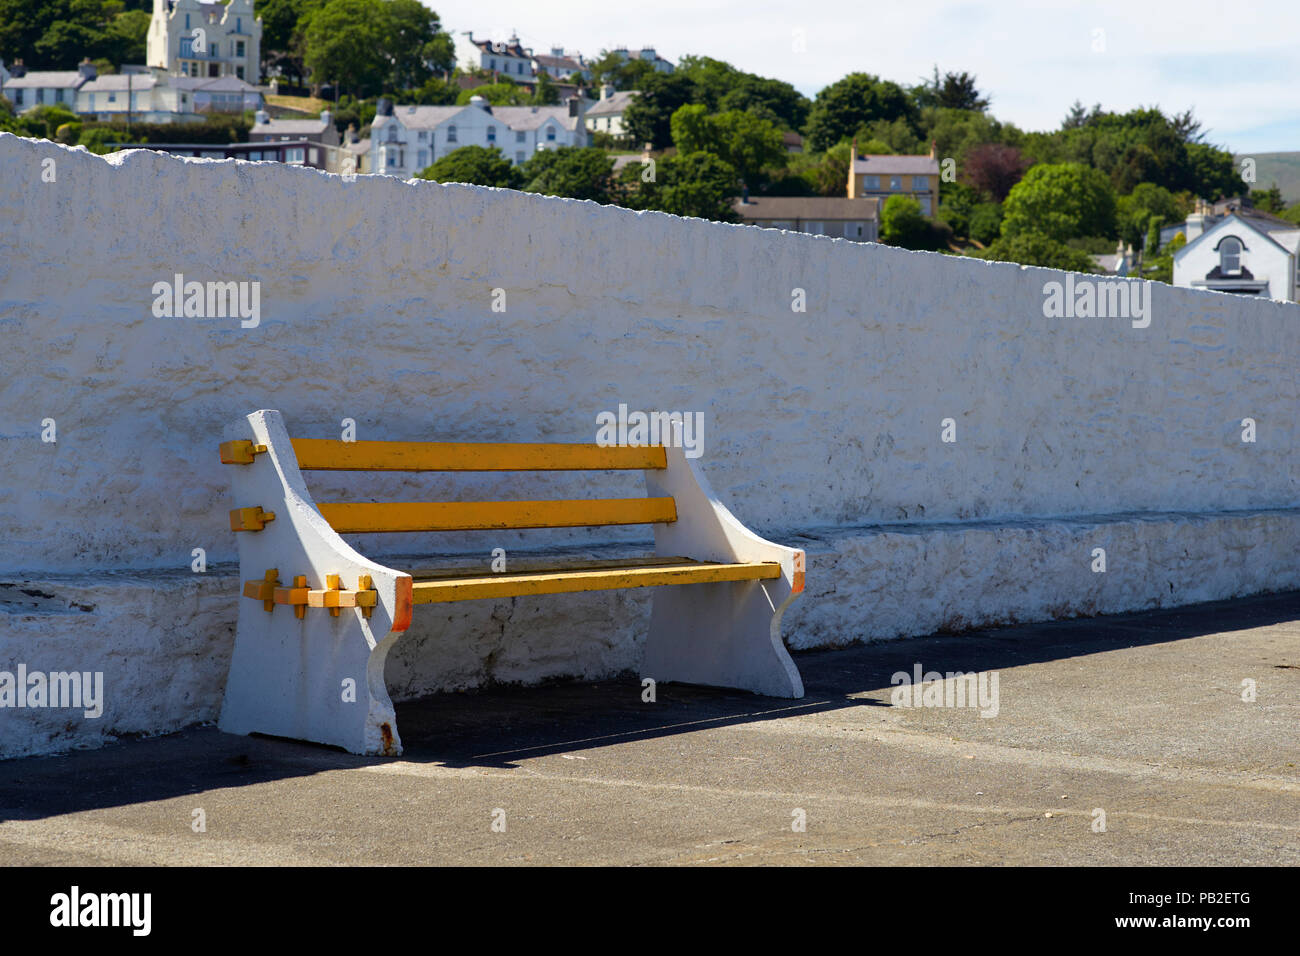 Public Seating Stock Photos Amp Public Seating Stock Images